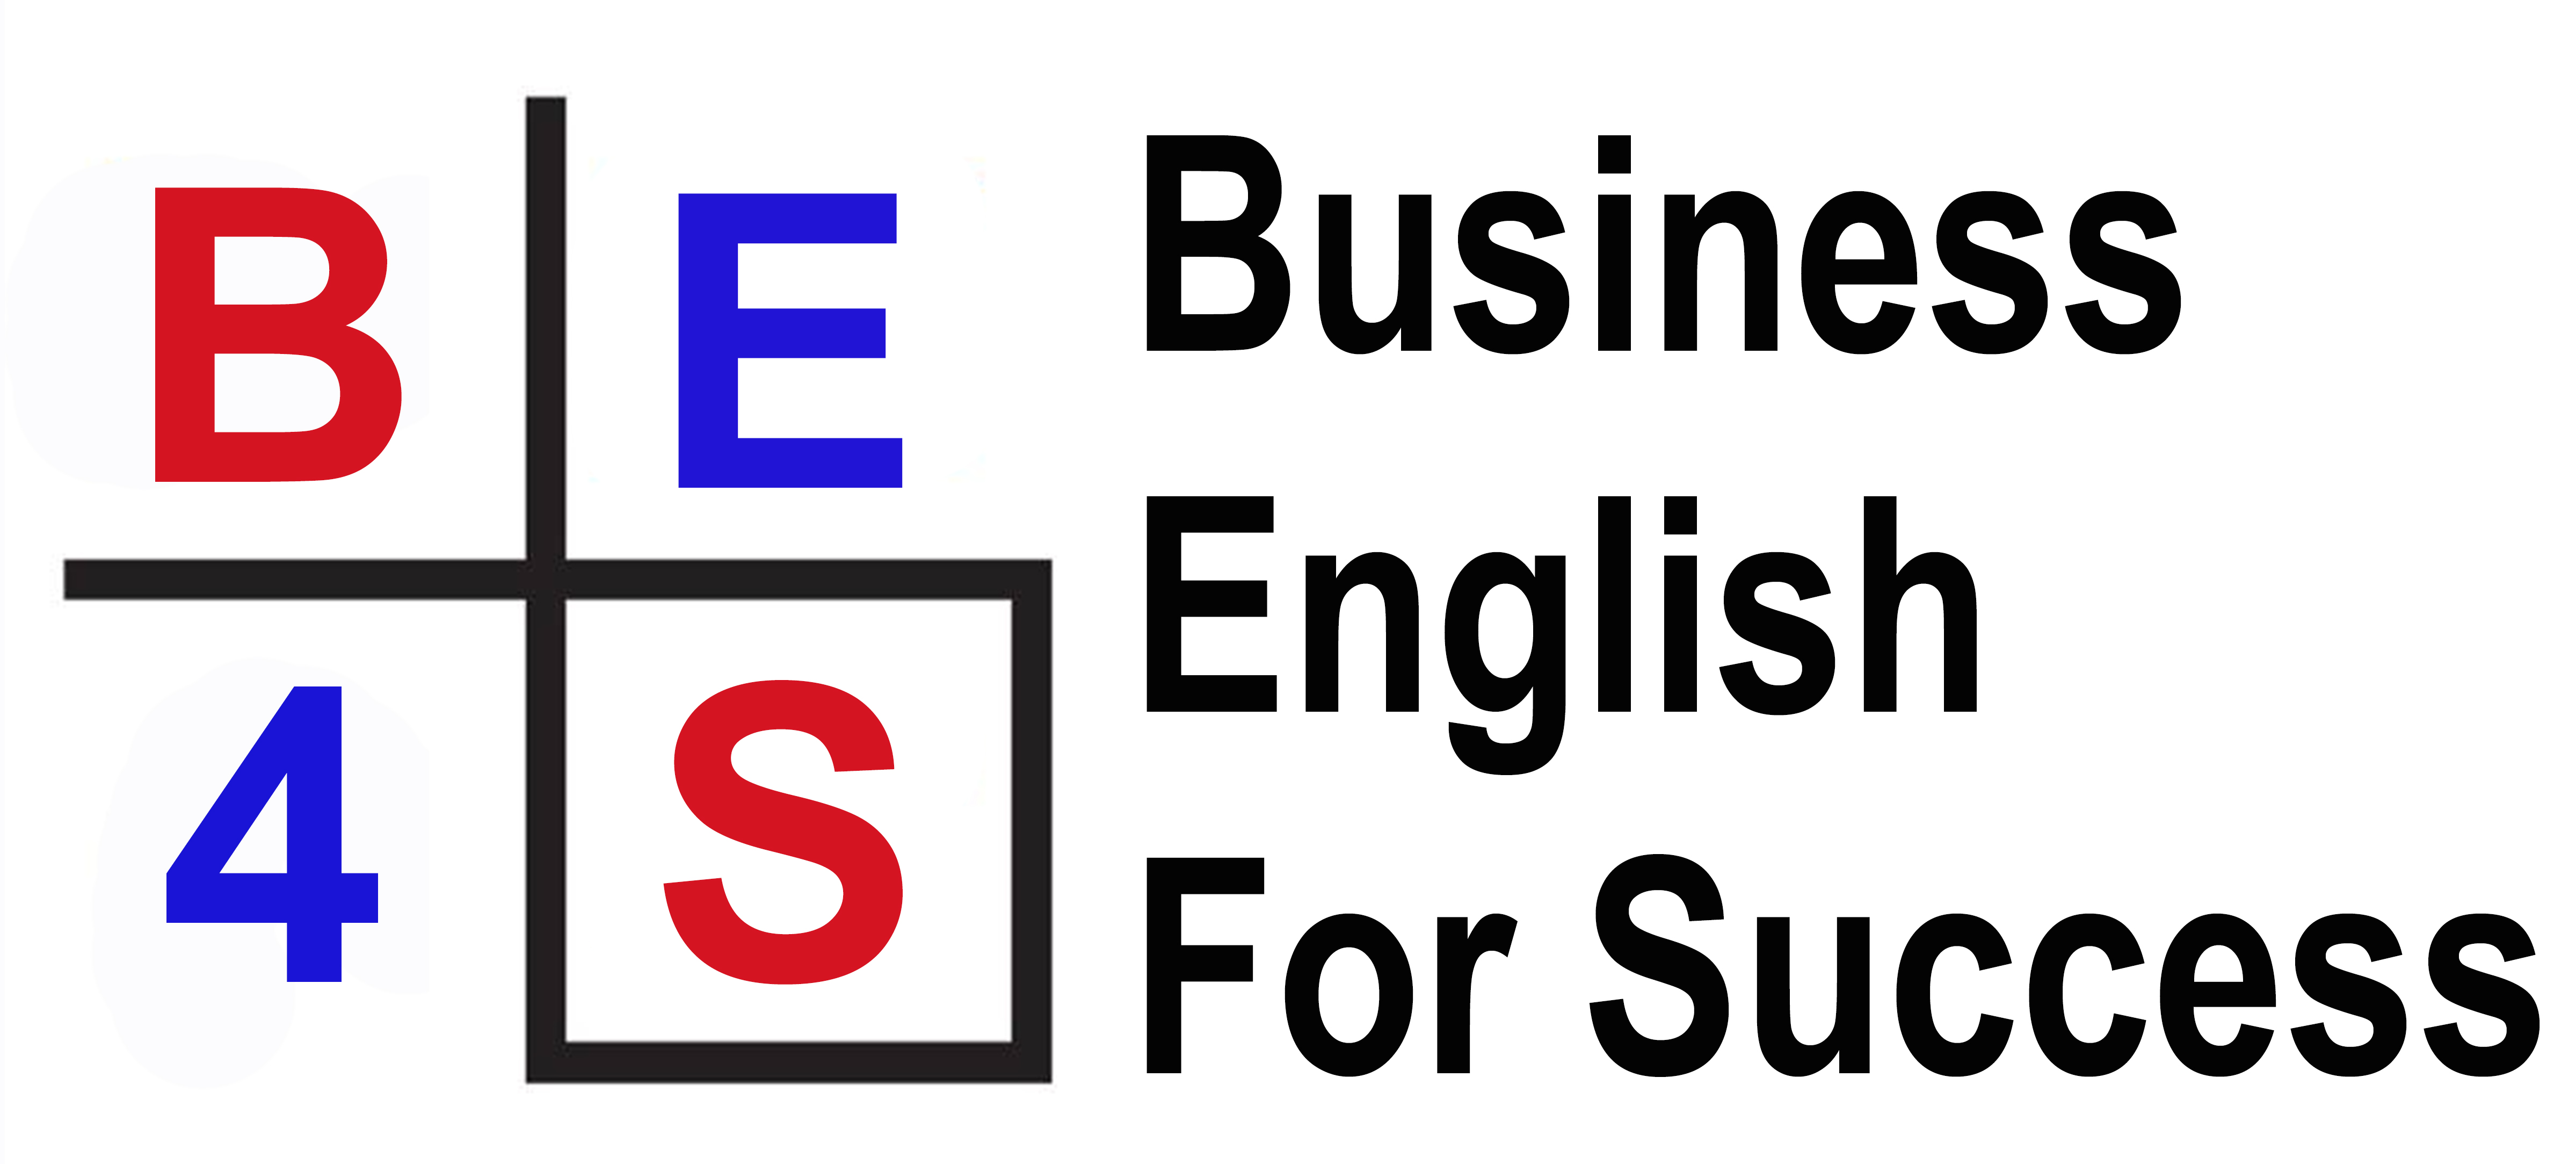 business english class Choose from a broad range of courses, covering everything from conversational  english and business writing and communications to english grammar and.